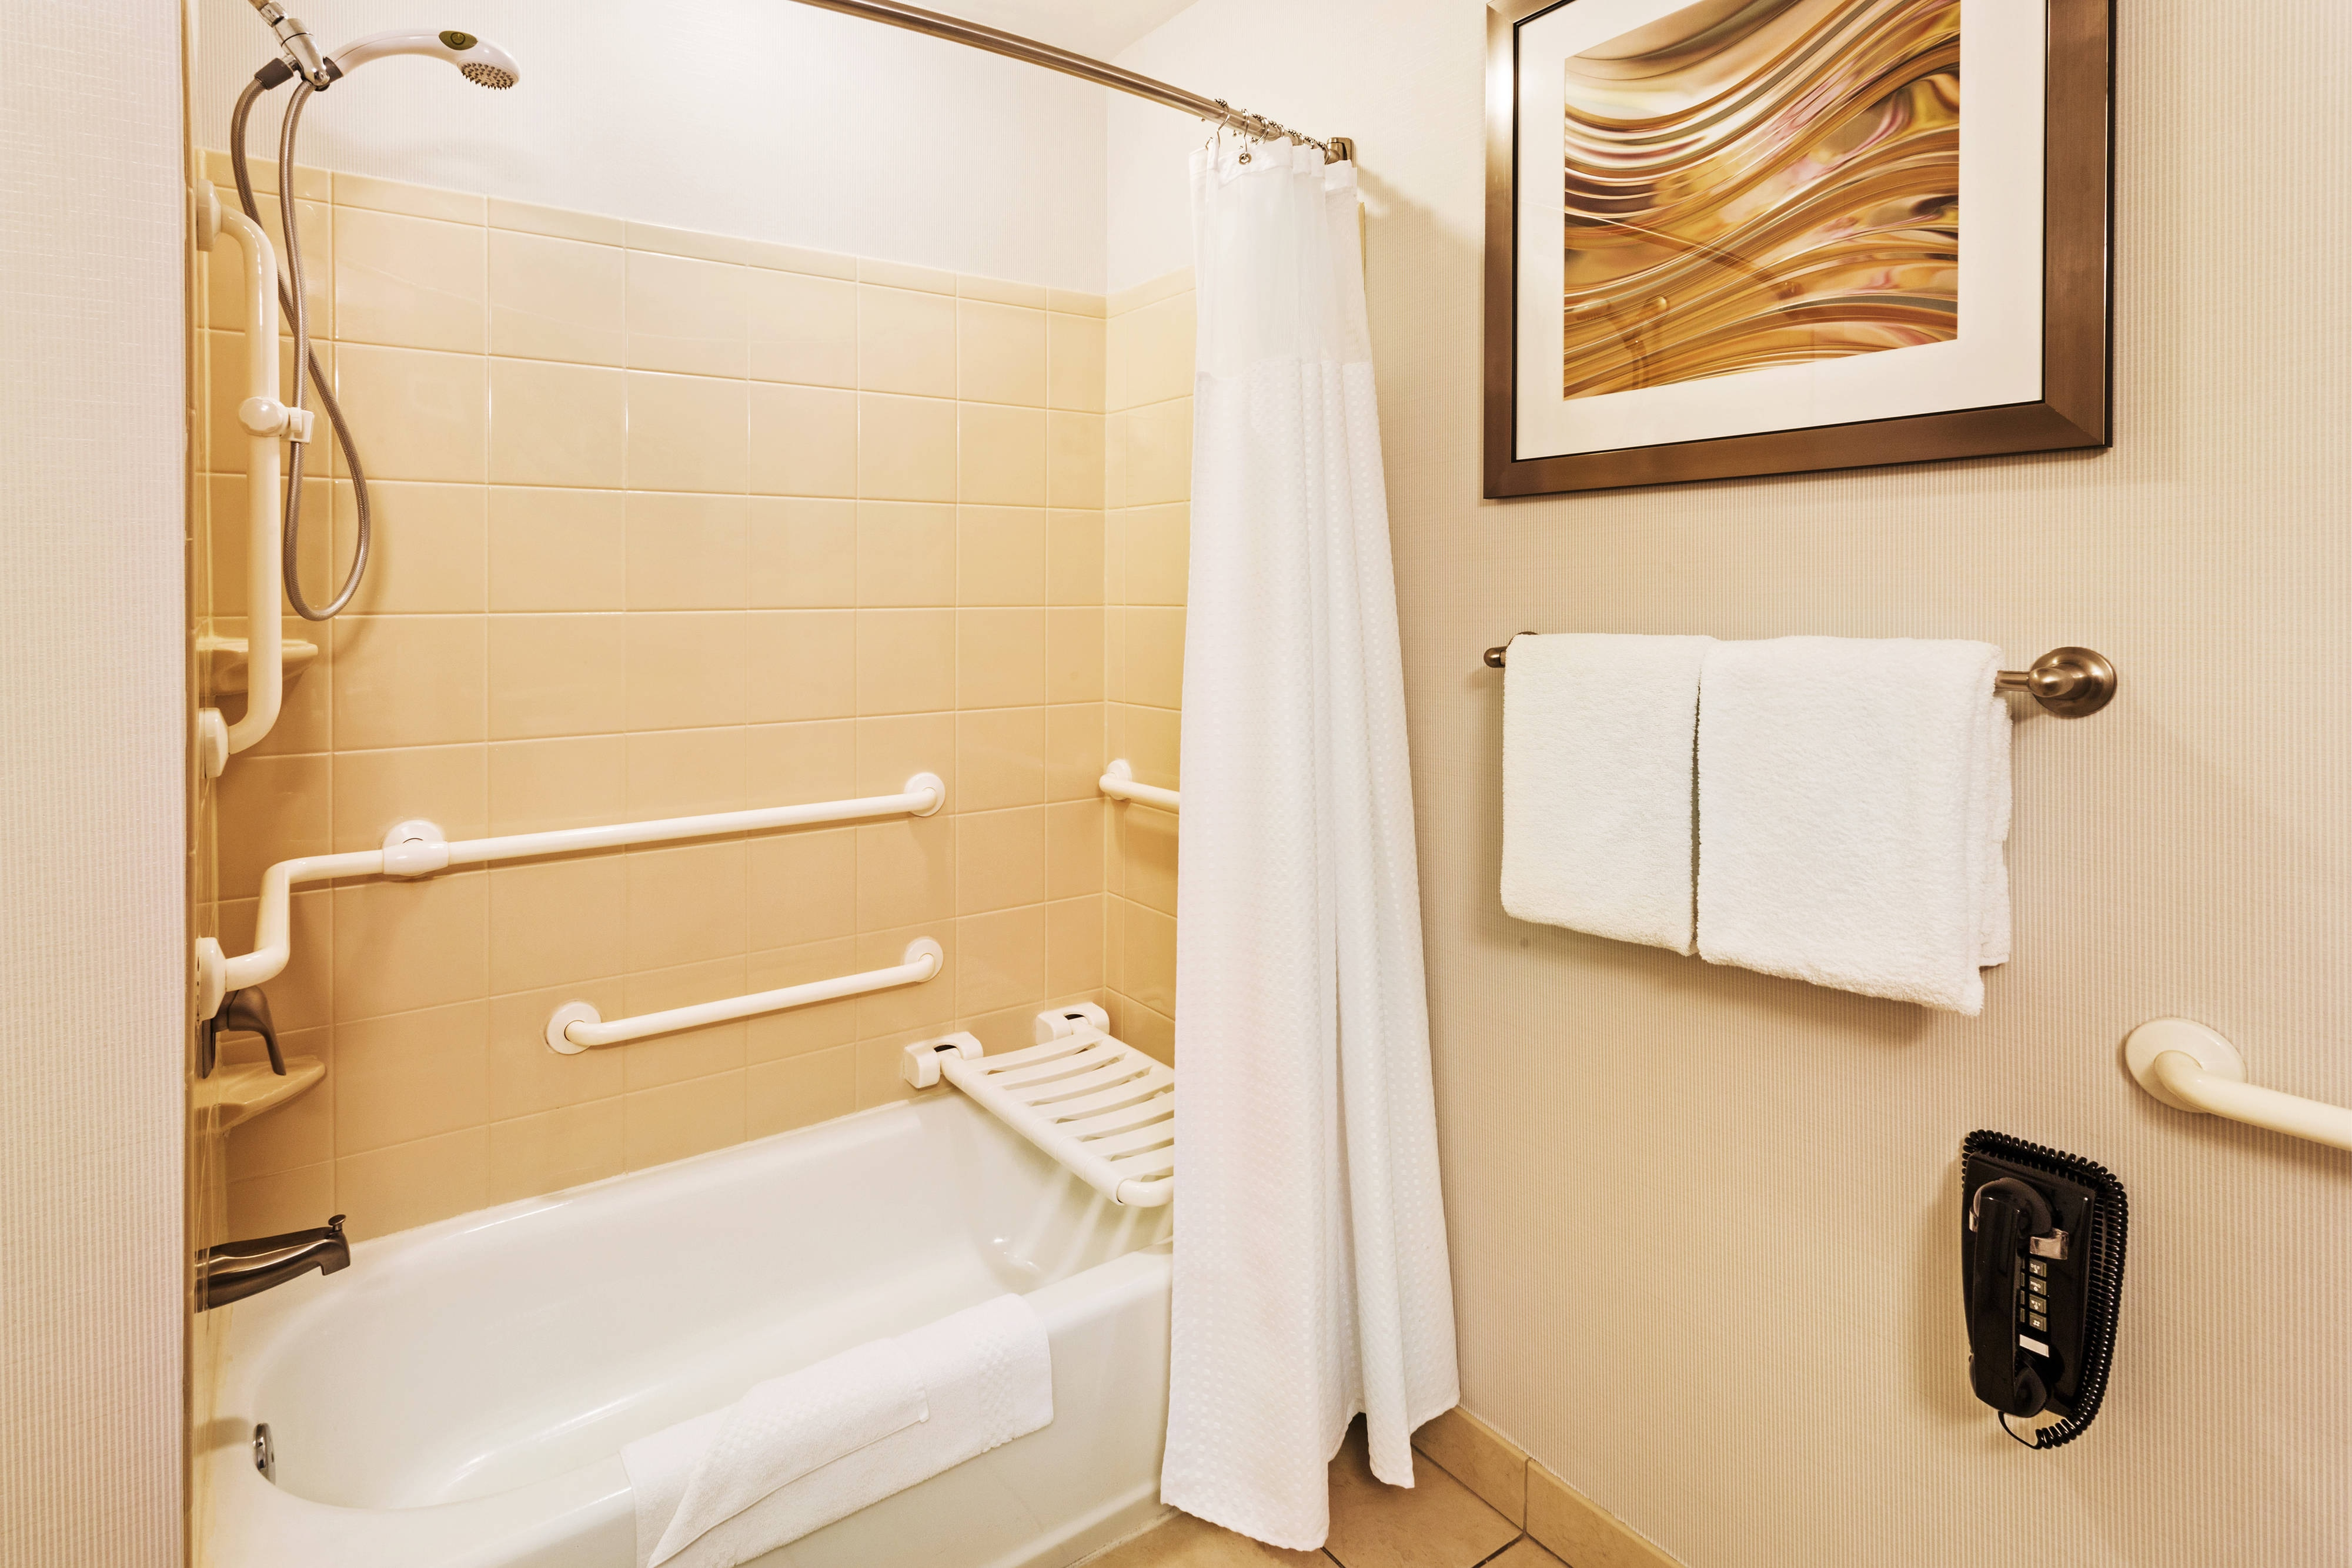 Accessible Roll-in Shower Bathroom